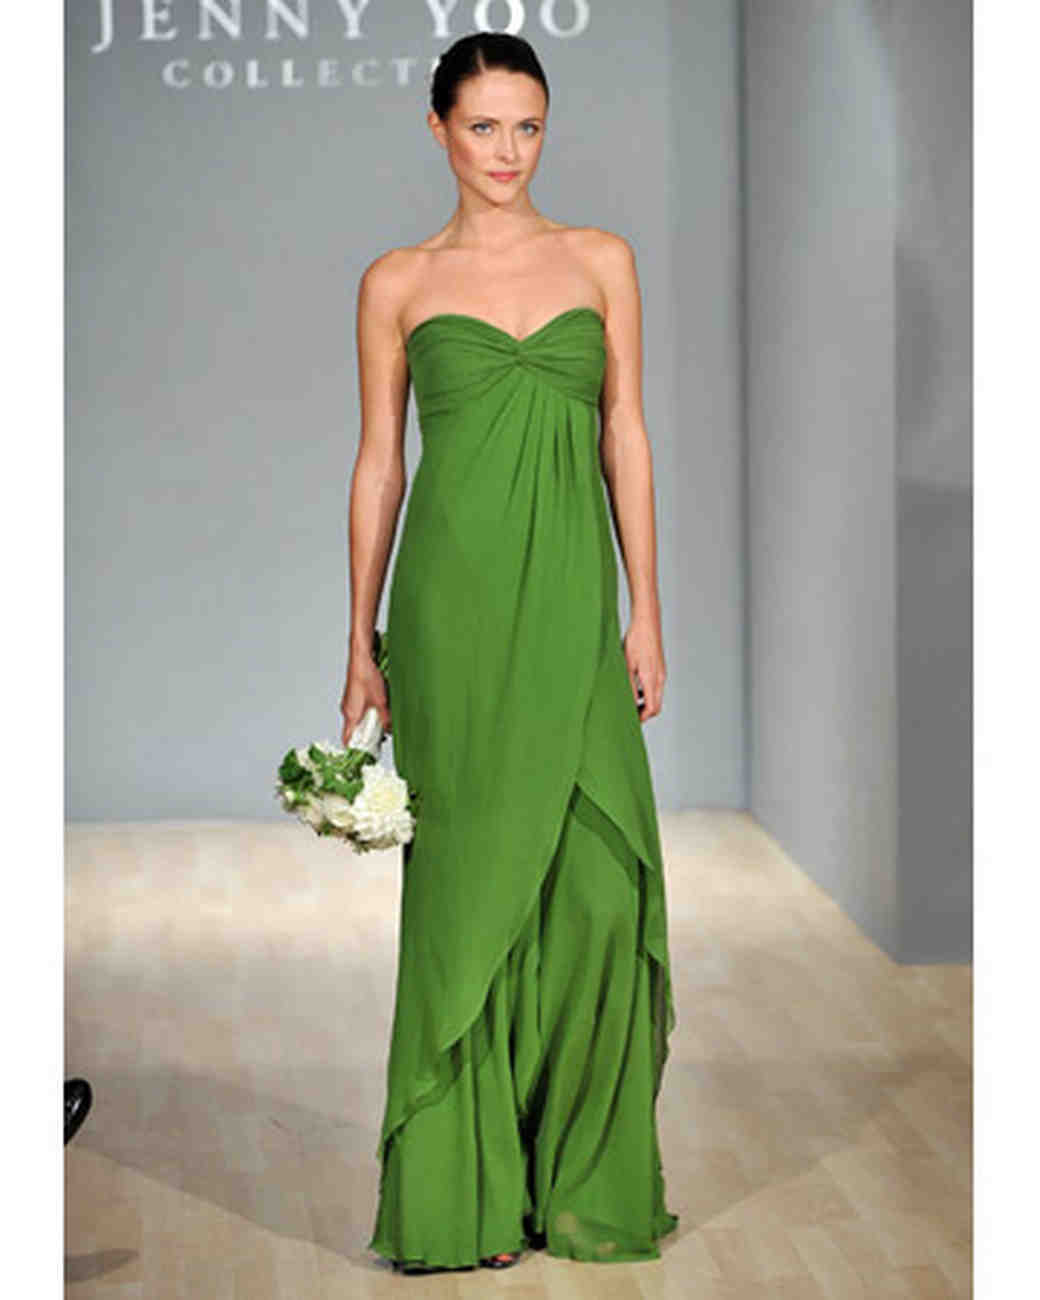 Blue and Green Bridesmaid Dresses | Martha Stewart Weddings